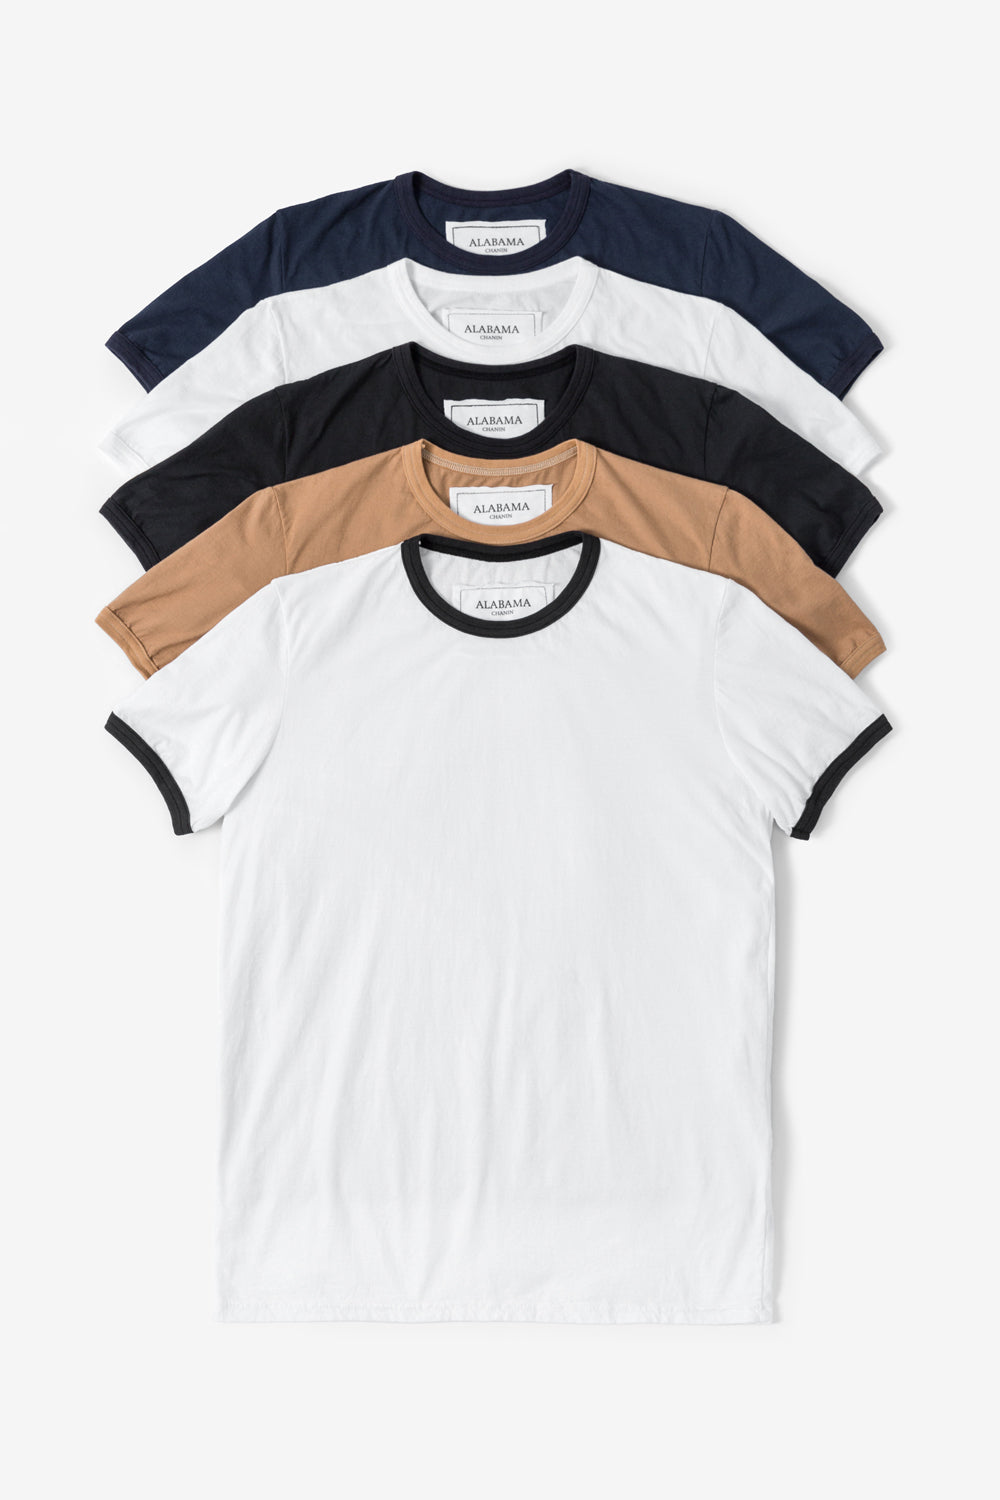 Alabama Chanin The Love Tee Bundle Classic Pick T-Shirt in Light Brown and Black